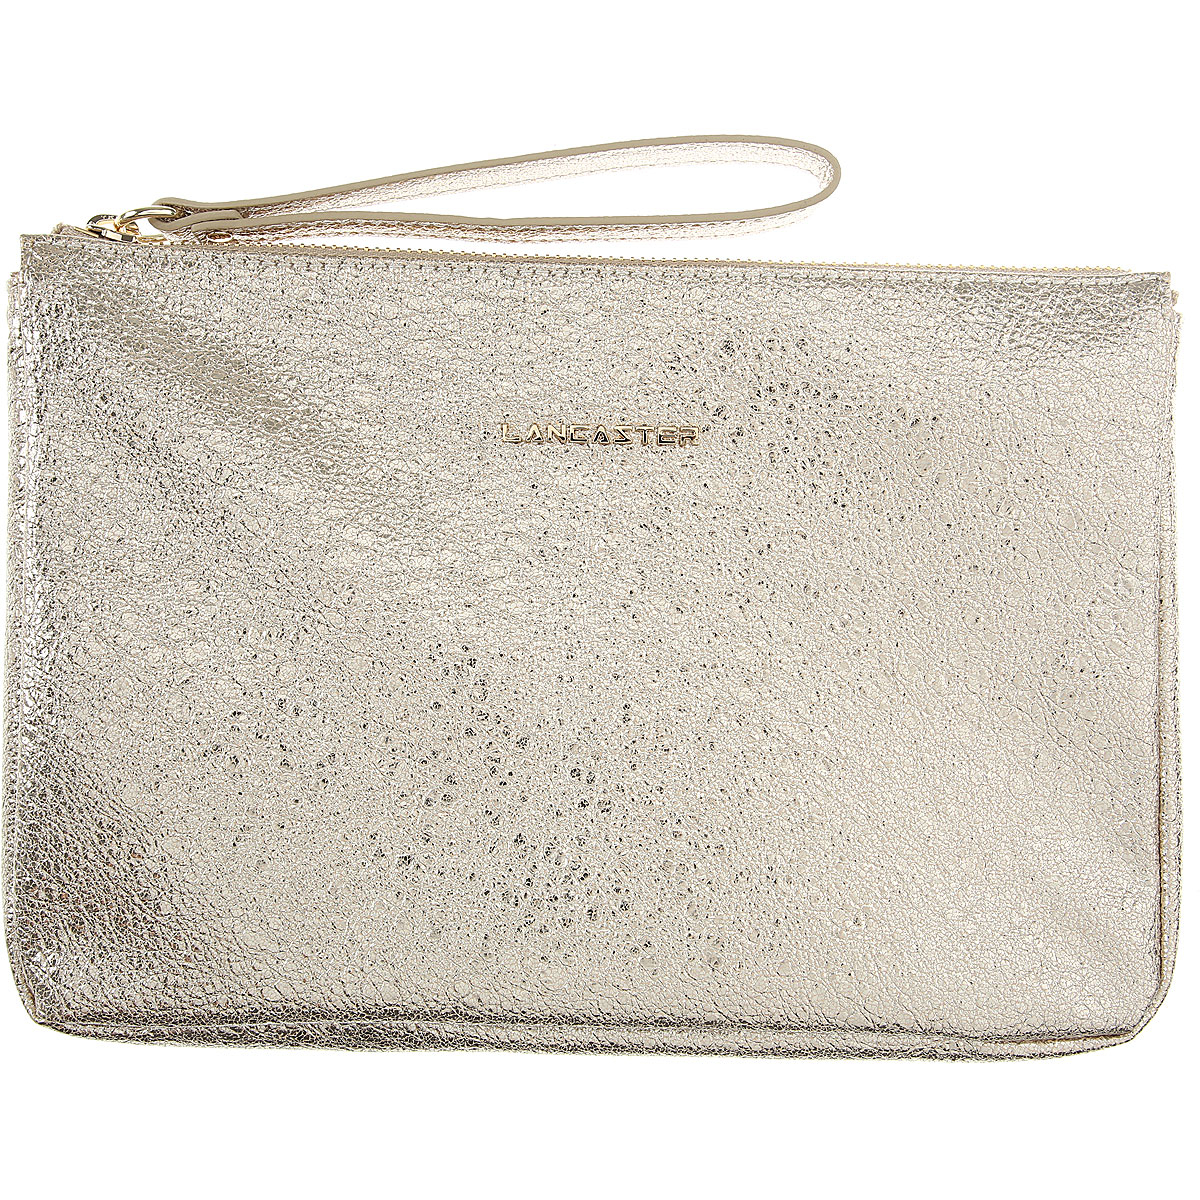 Lancaster Women's Pouch Gold Canada - GOOFASH - Womens BAGS